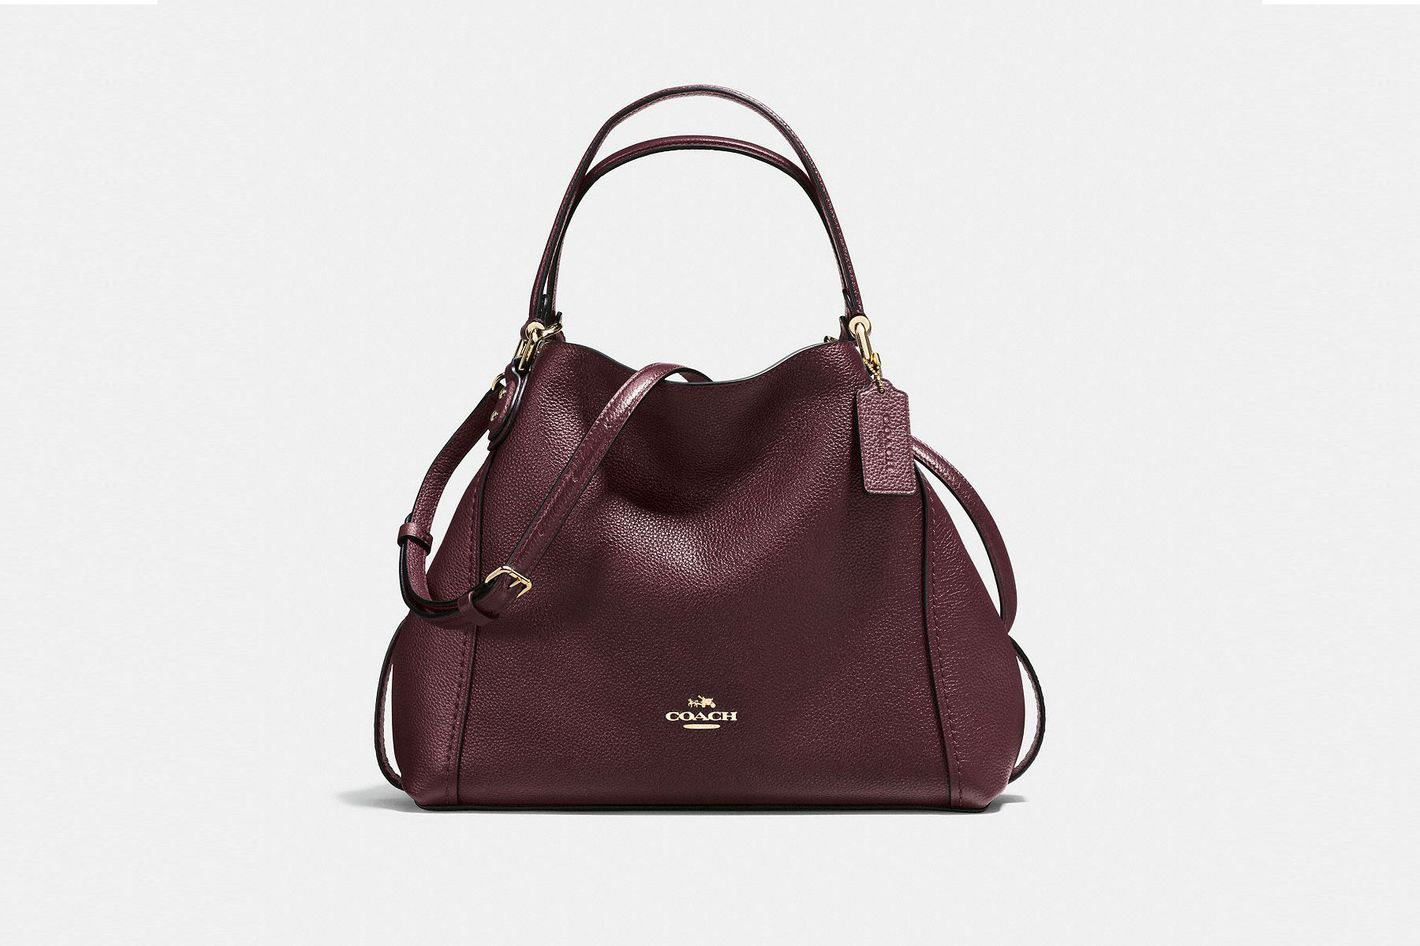 05772cc321ee28 Coach Purses Black Friday Deals | Stanford Center for Opportunity ...